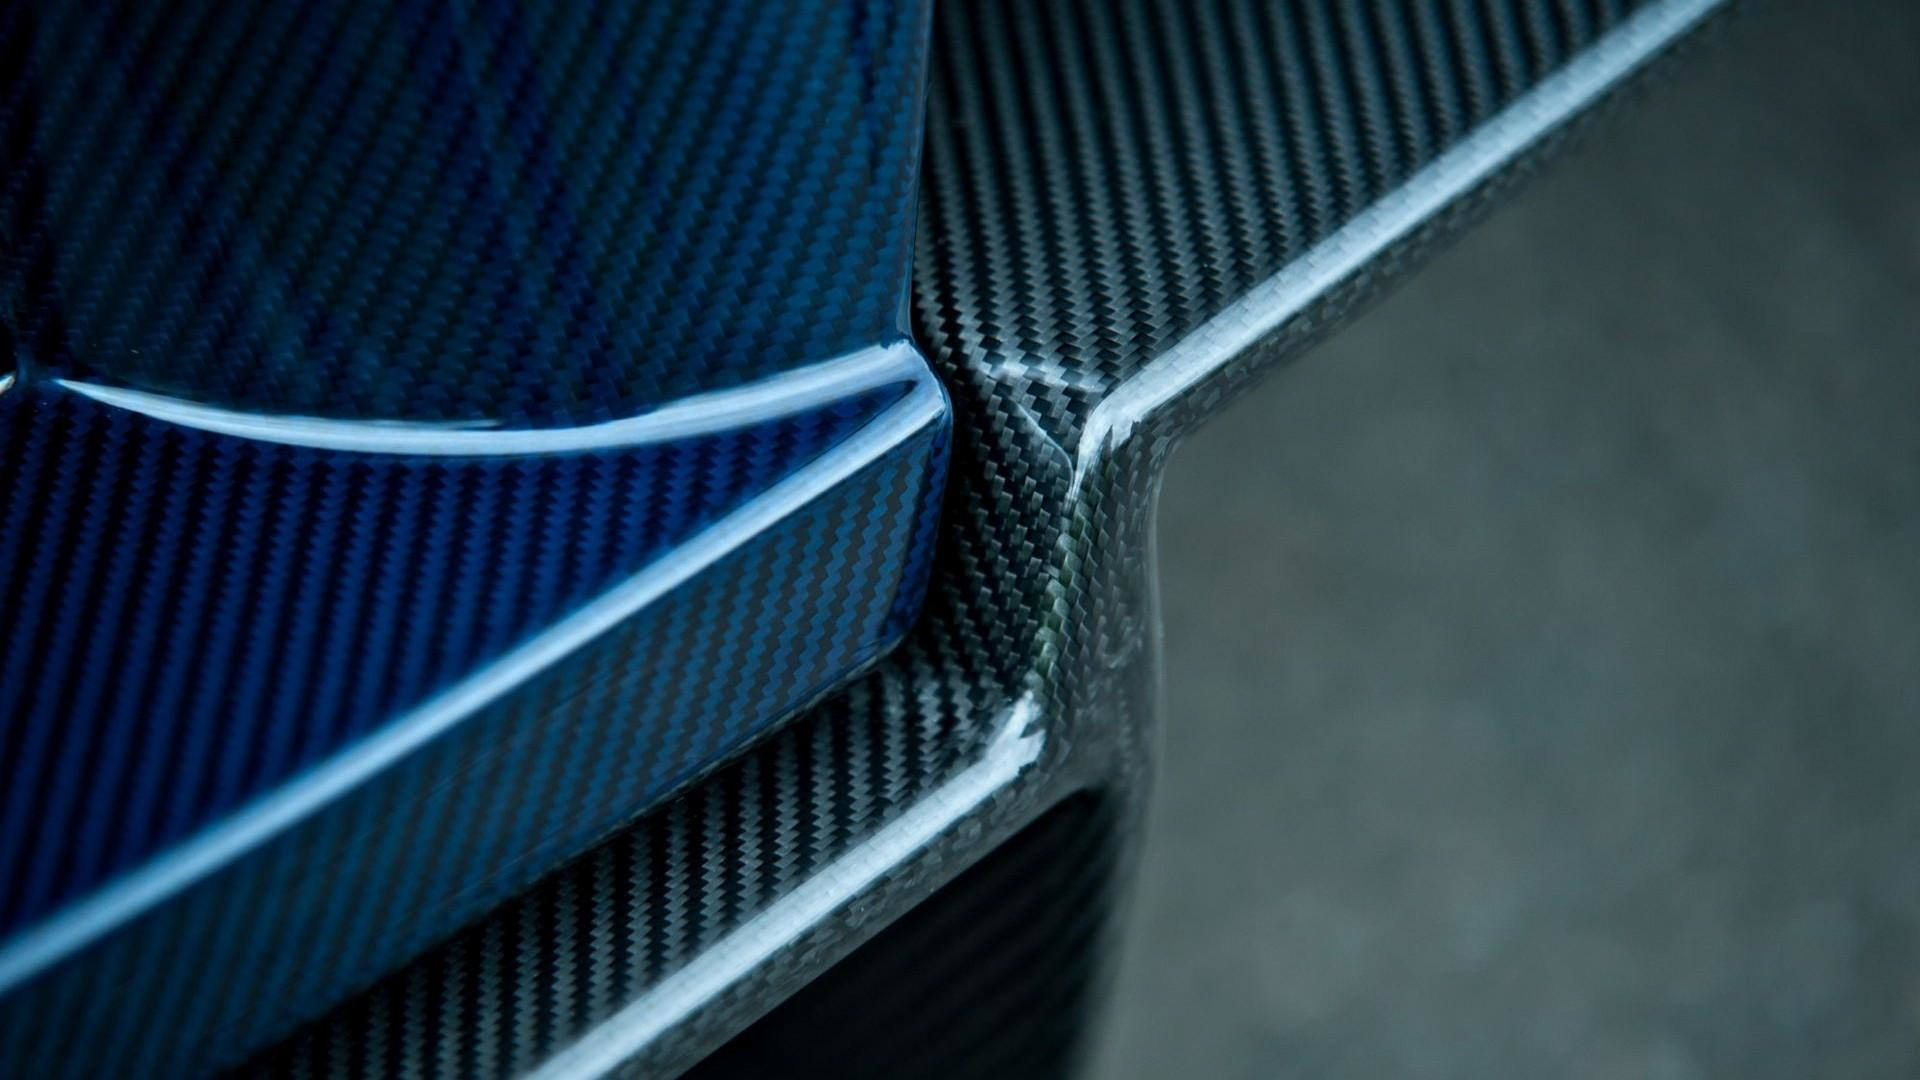 Zonda-audi-subaru-artwork-supercars-carbon-fiber-HD-